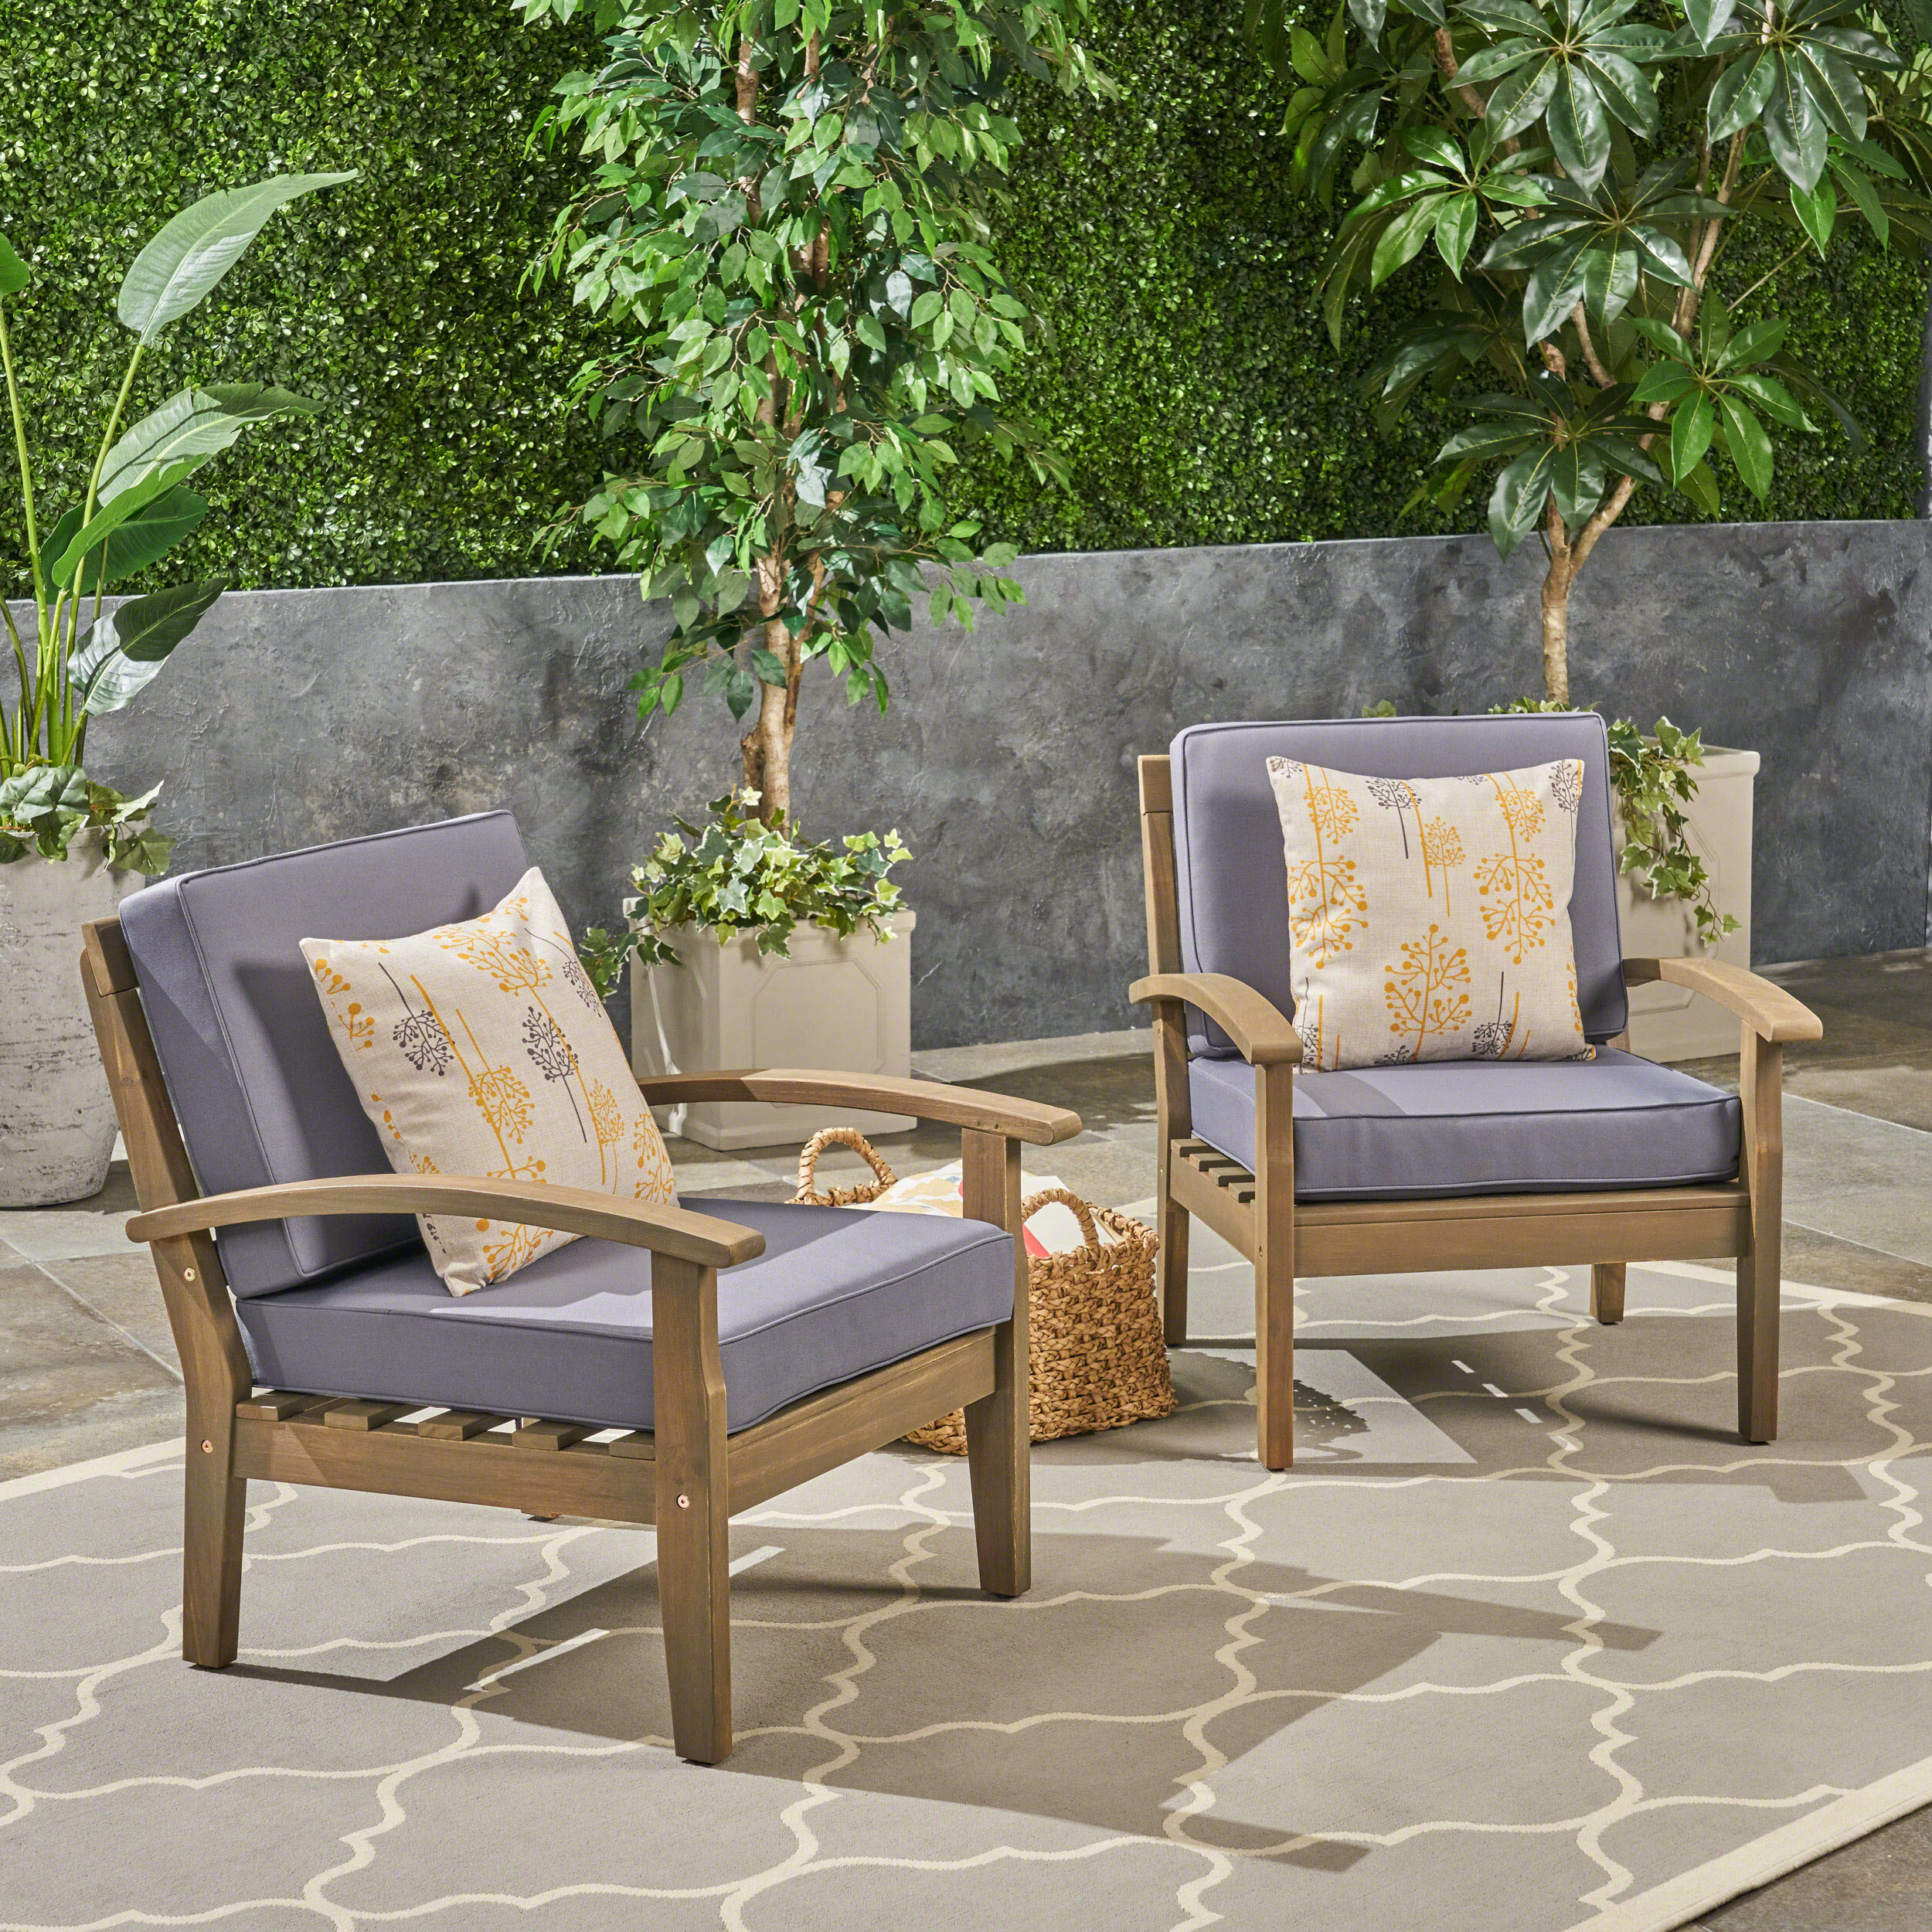 Ryland Outdoor Wooden Club Chairs, Set of 2, Gray, Dark Gray